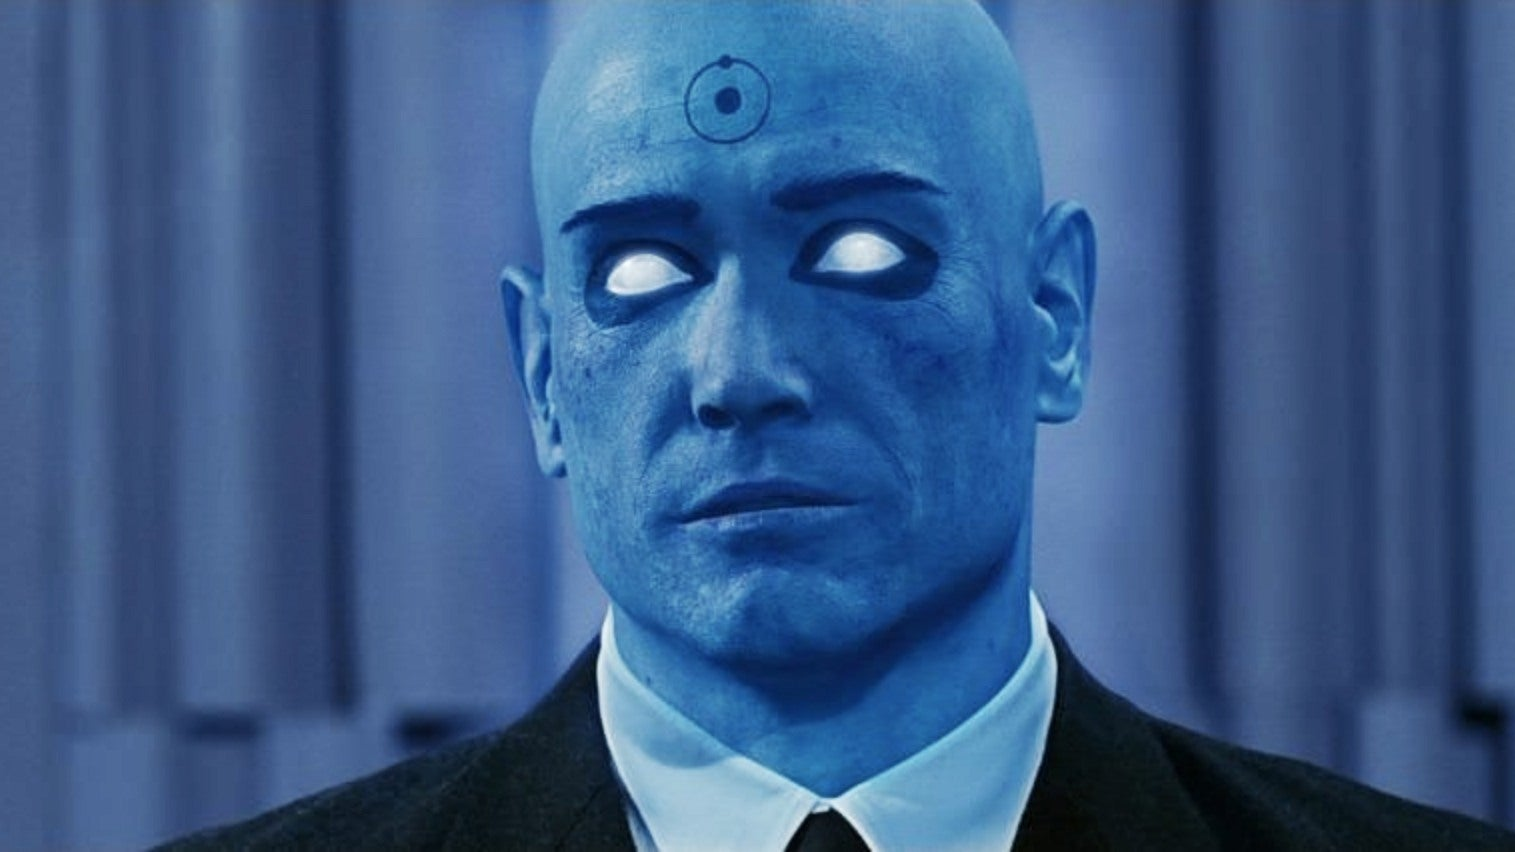 Couples Therapy Dr Manhattan